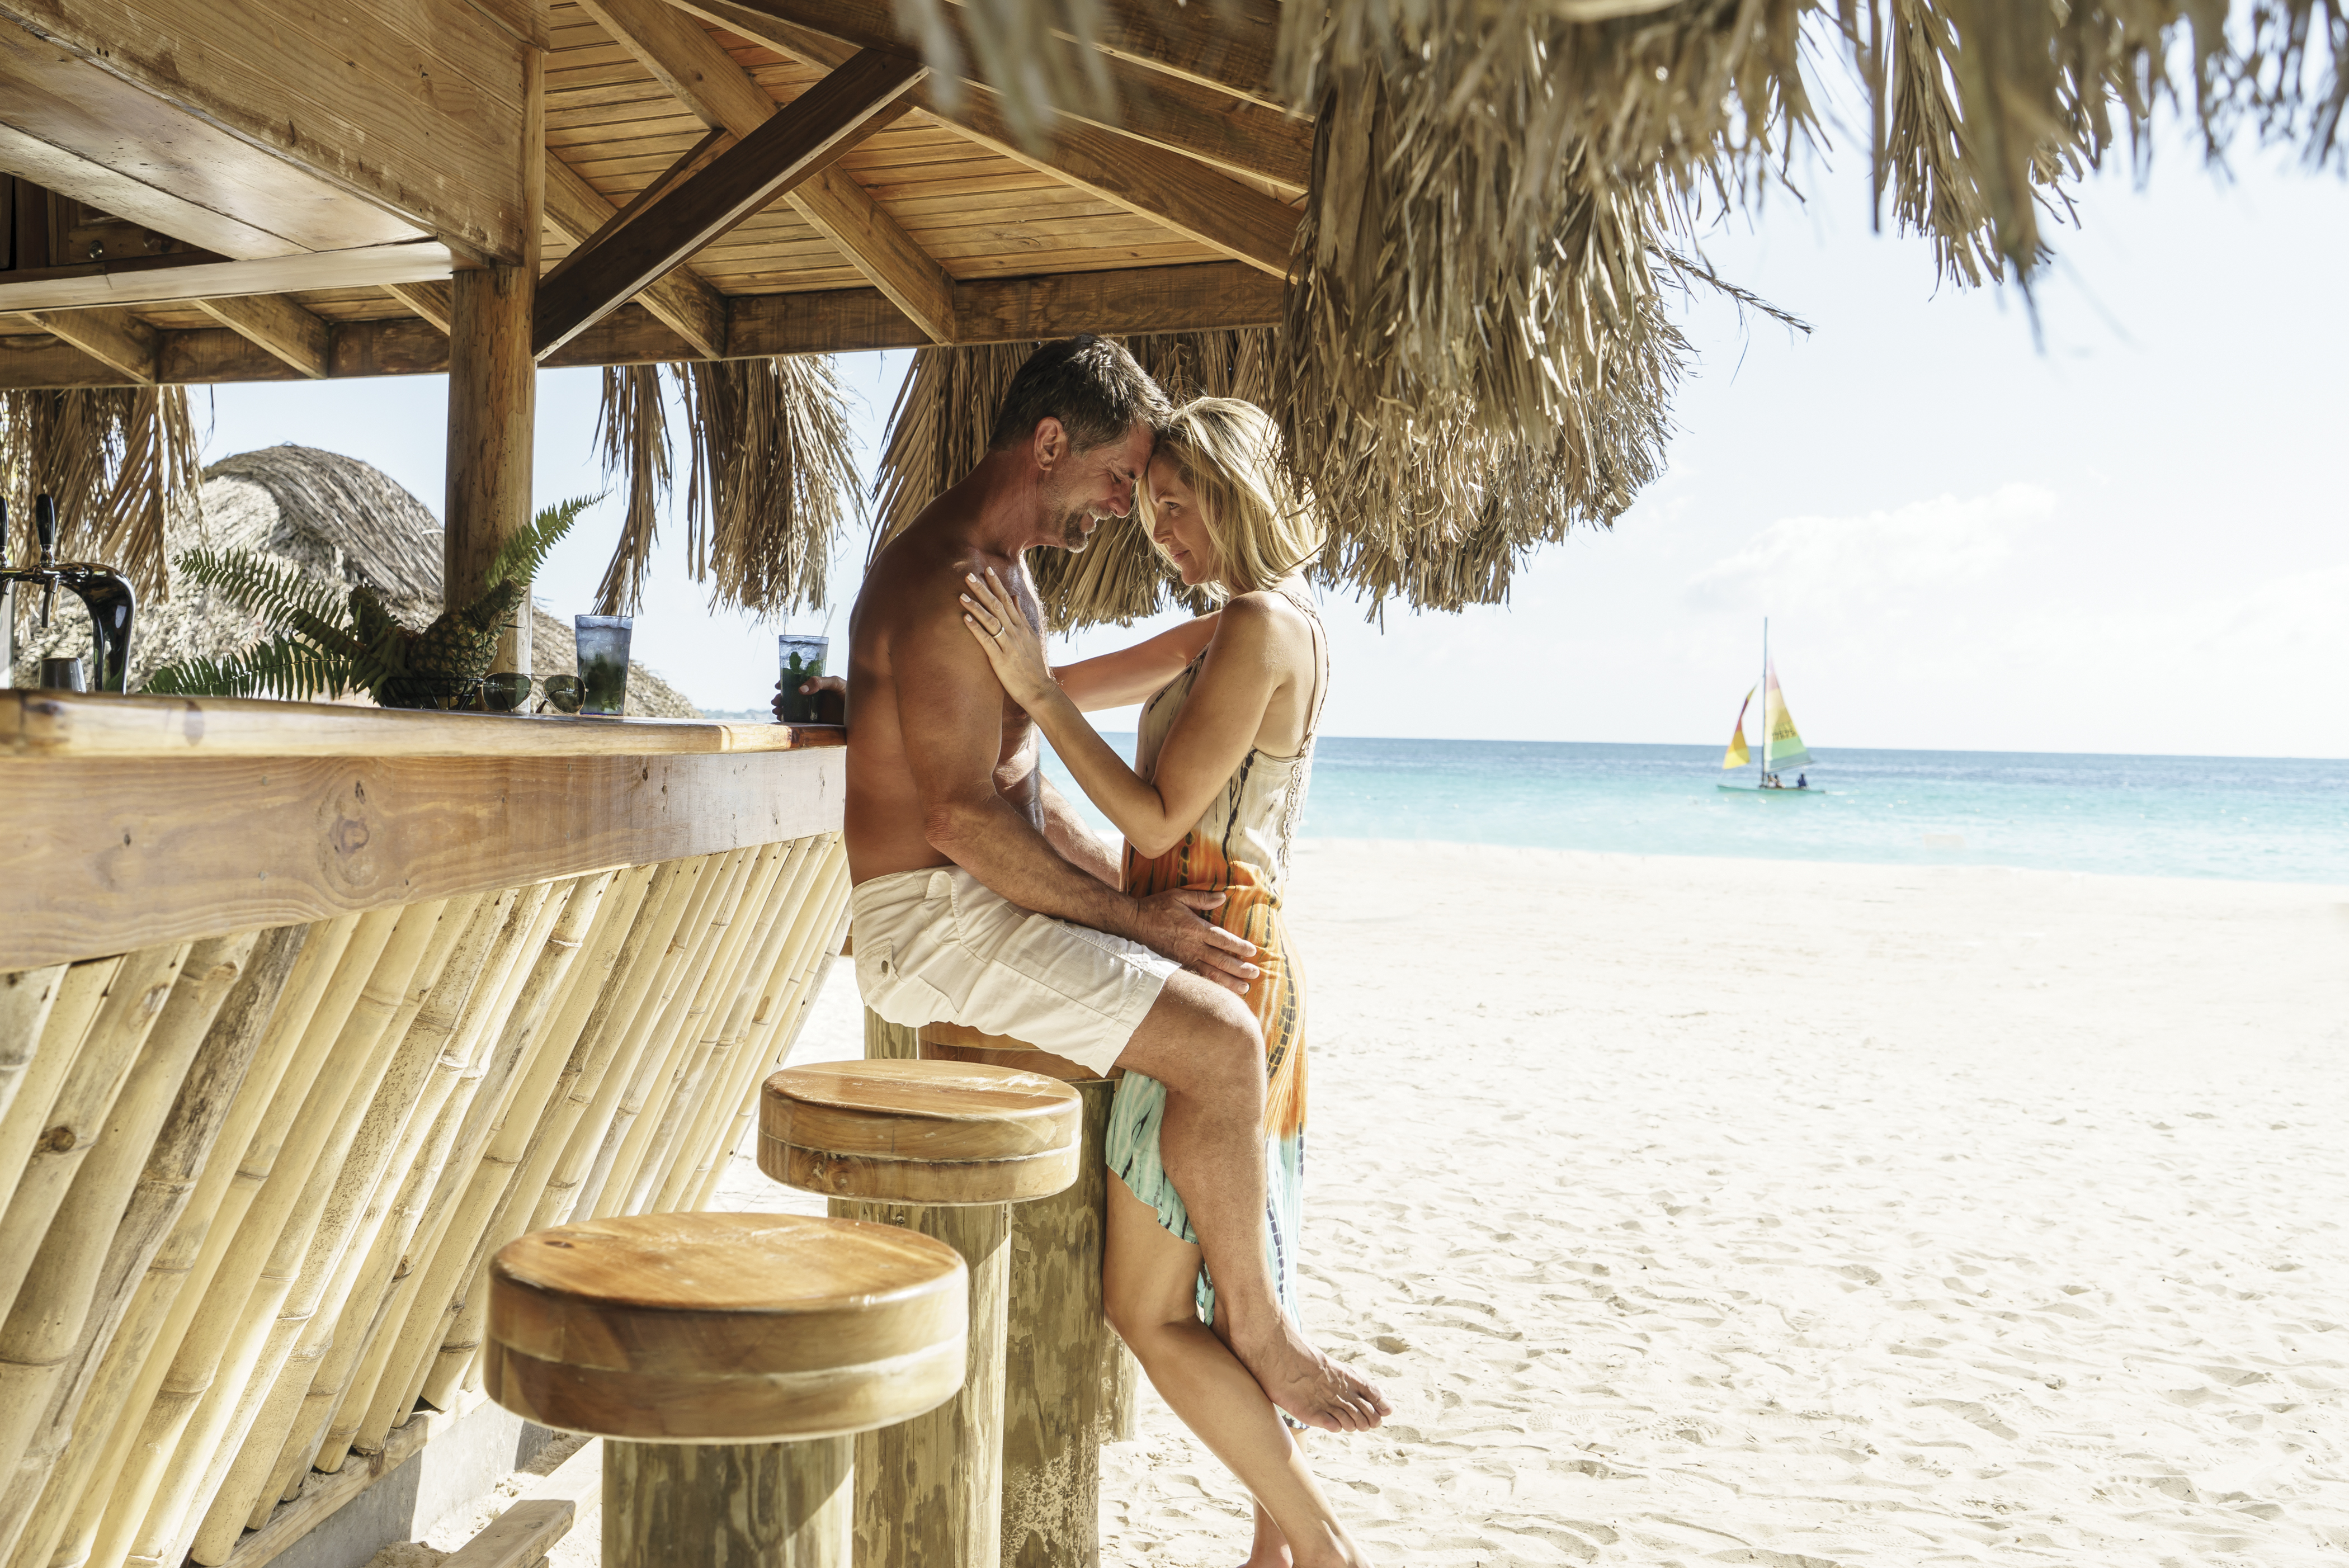 Travel Agency All-Inclusive Resort Couples Swept Away 02